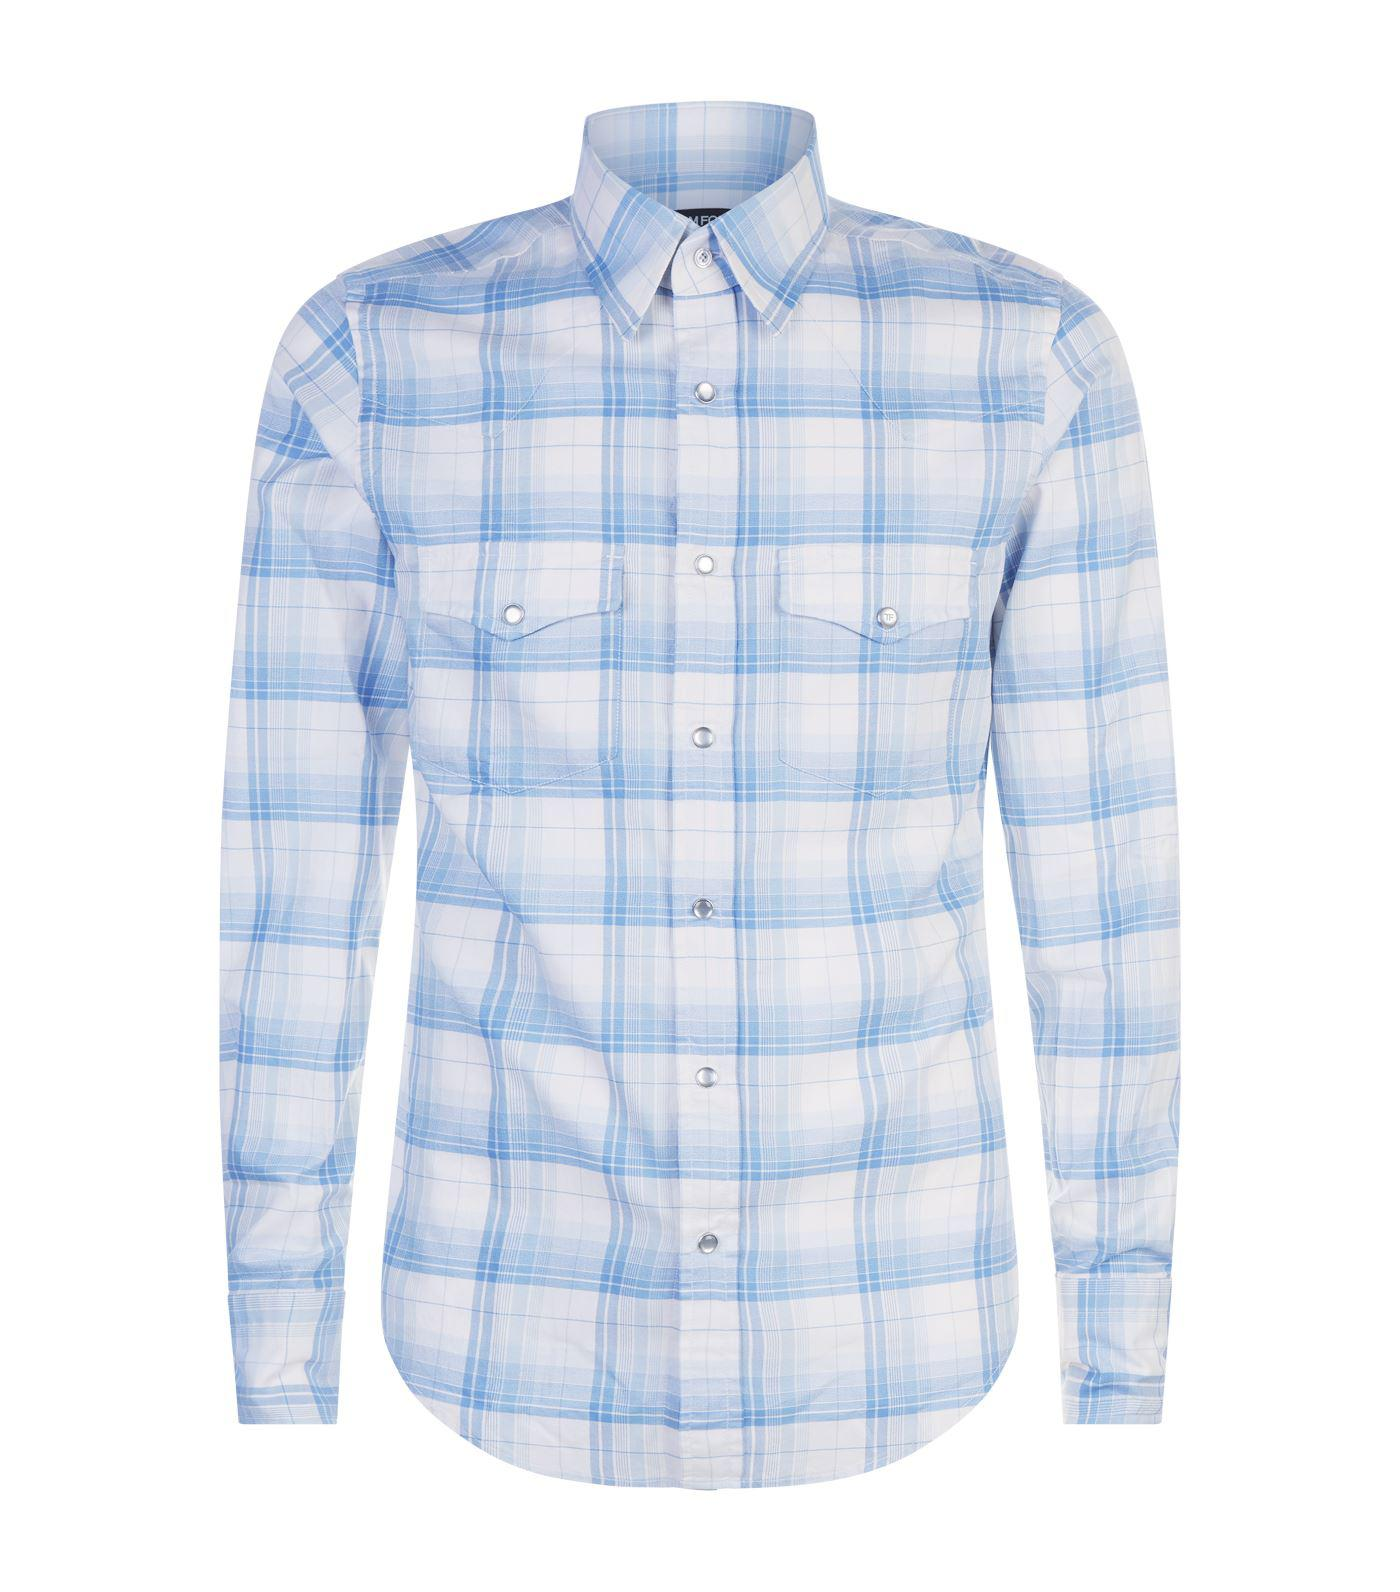 f1e15ad2c6d Lyst - Tom Ford Western Cuff Check Shirt in Blue for Men